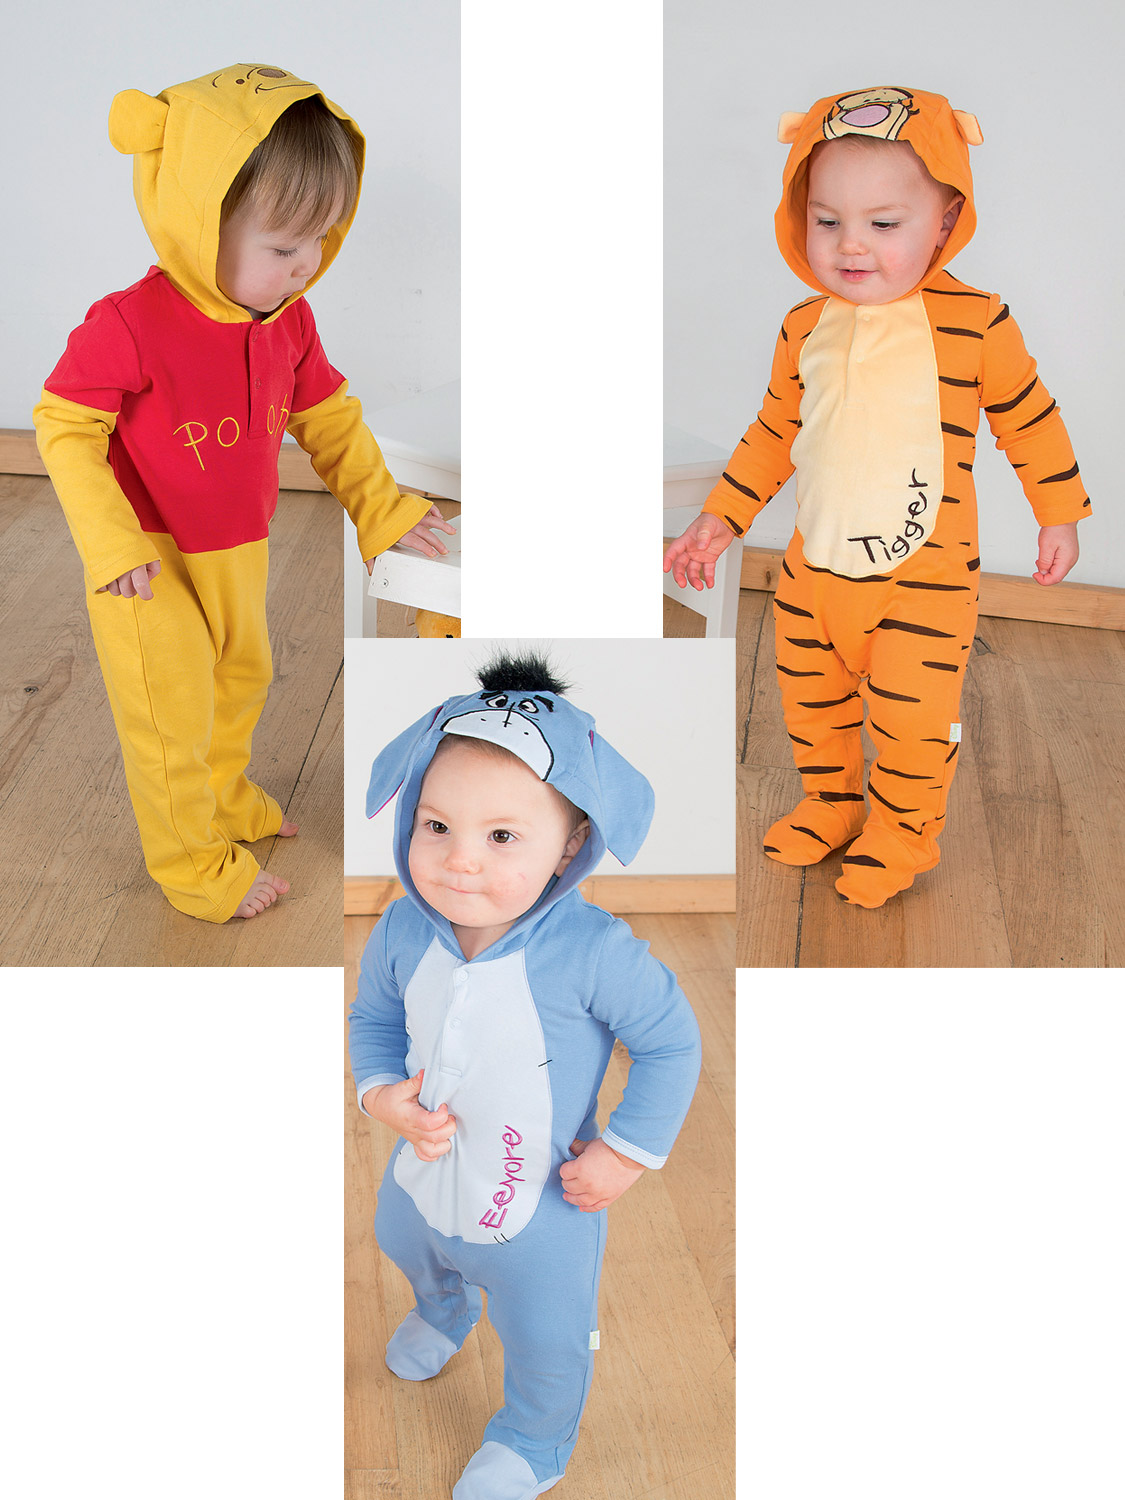 Details about Baby Toddler Disney Winnie the Pooh Bear Romper Fancy Dress  Tigger Costume Boys 0c995d1b8